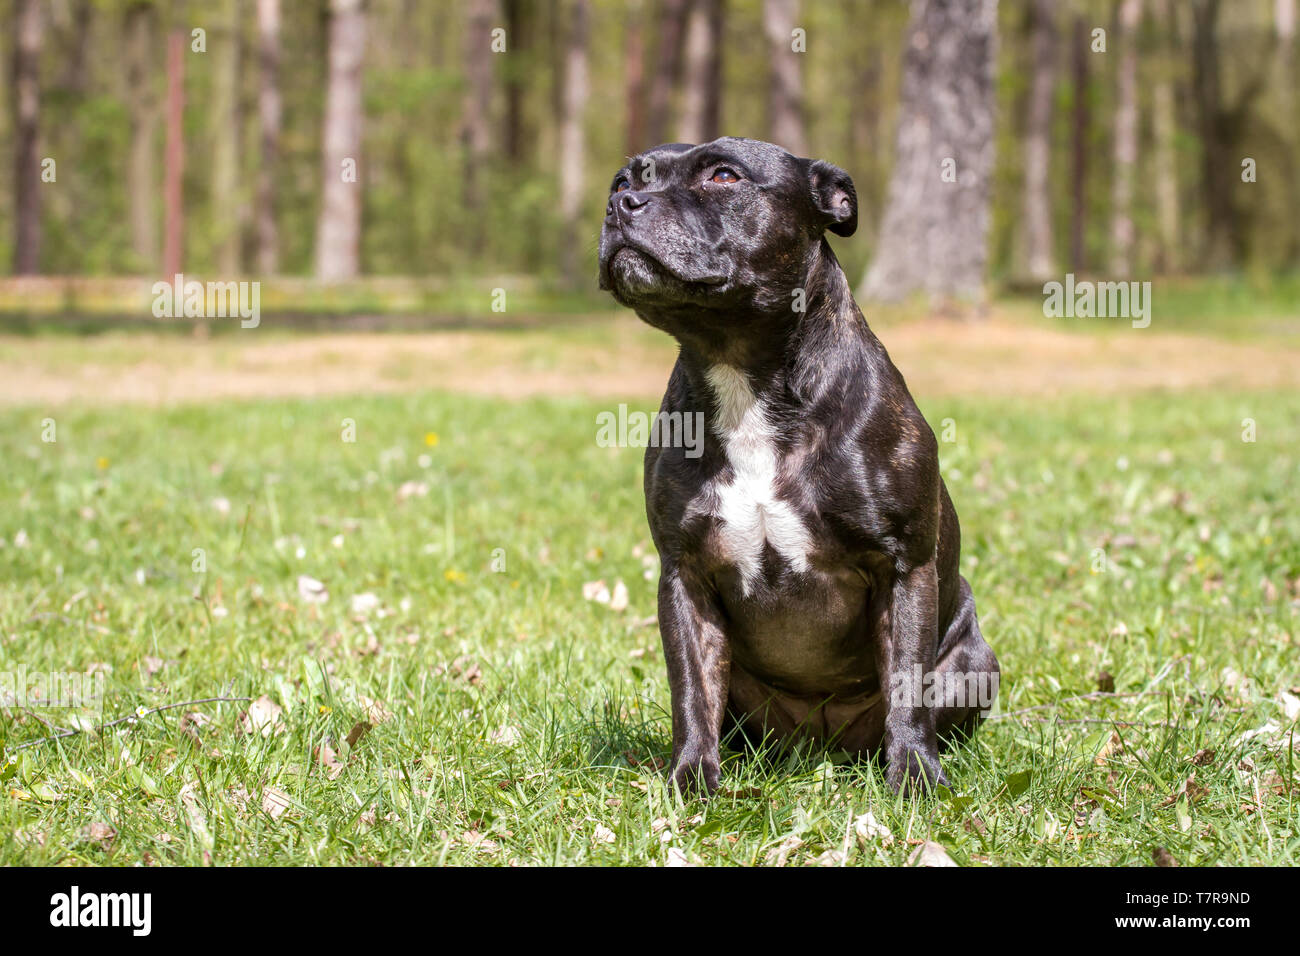 Staffordshire Bullterrier sitting on a meadow - Stock Image